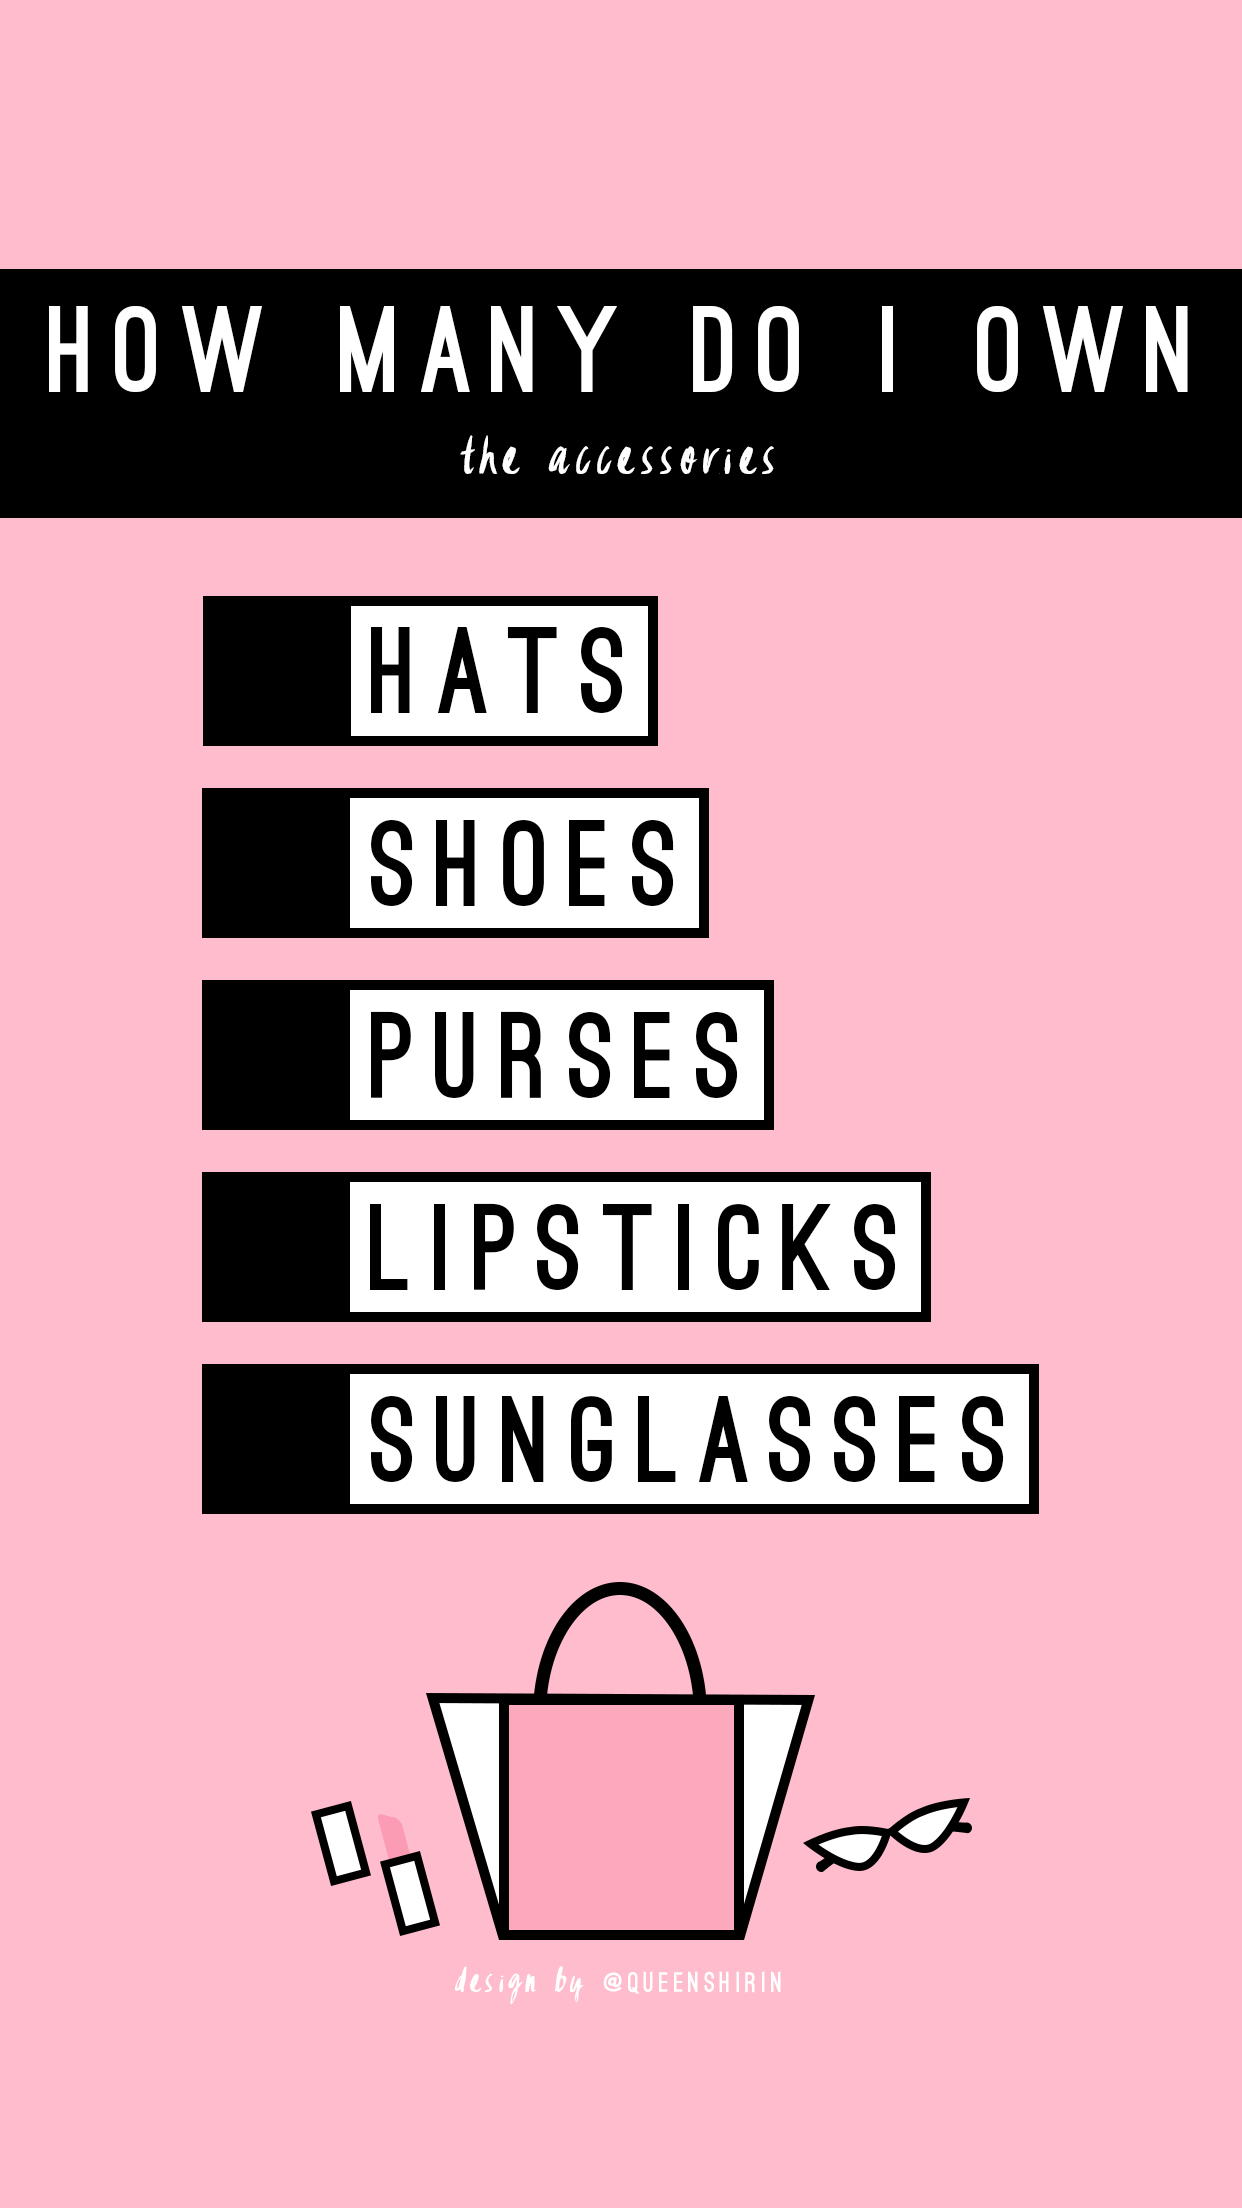 How-Many-Do-I-Own-Accessories-Instagram-Story-Template-queenshirin.png